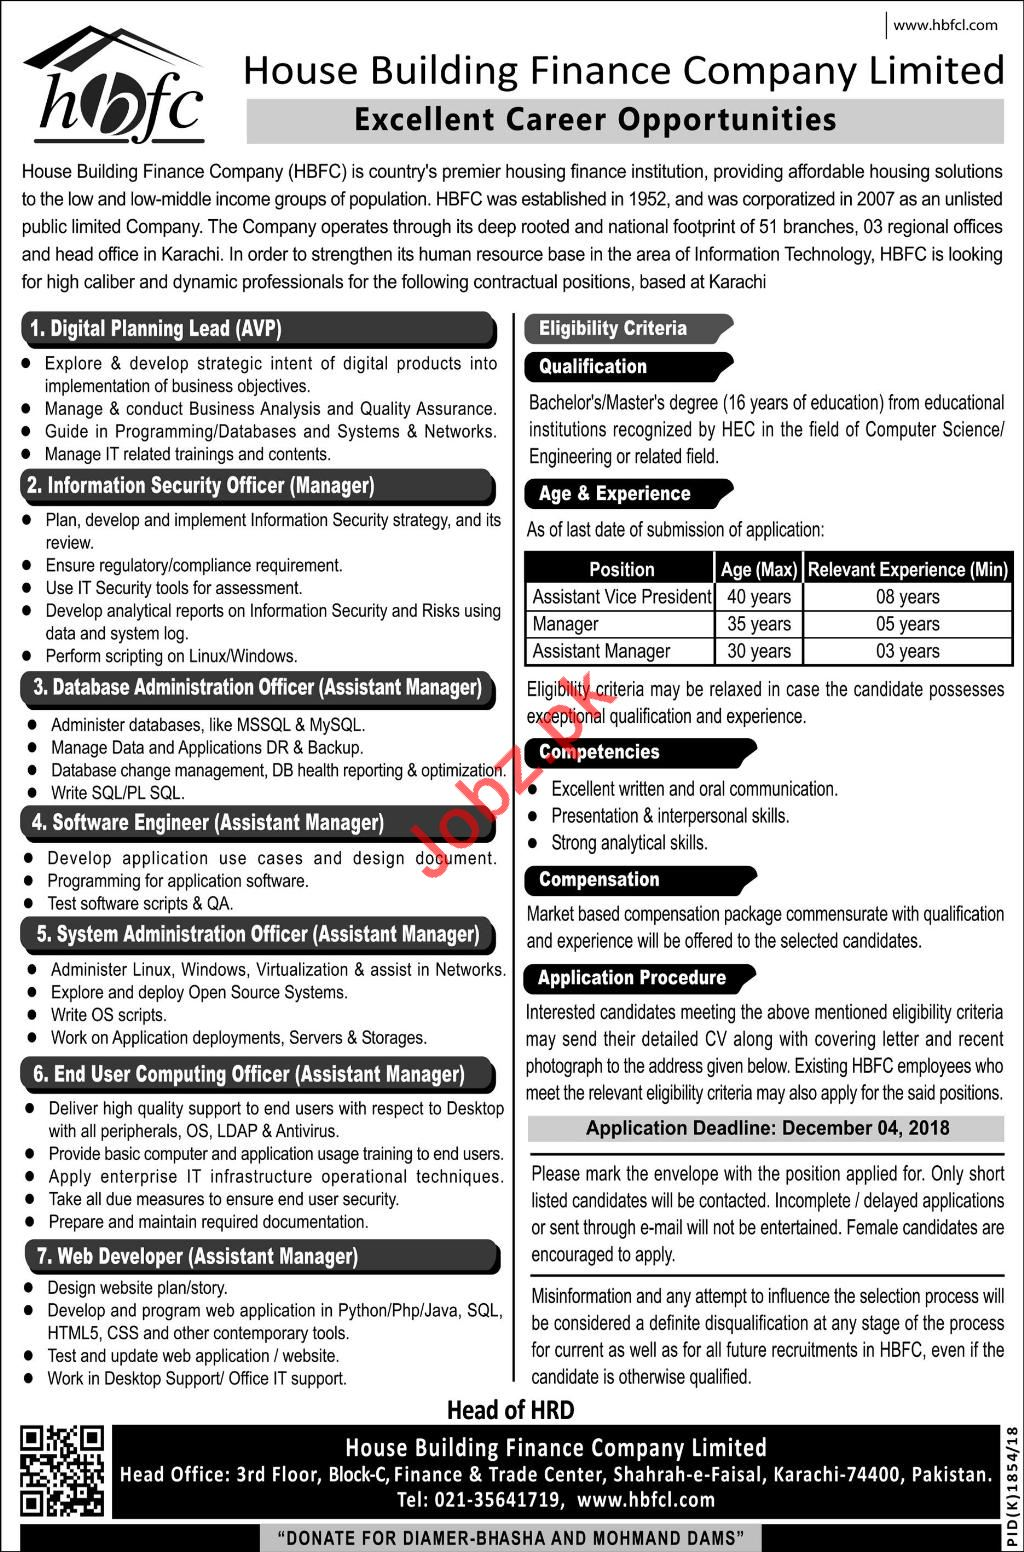 HBFC House Building Finance Company Limited Jobs 2018